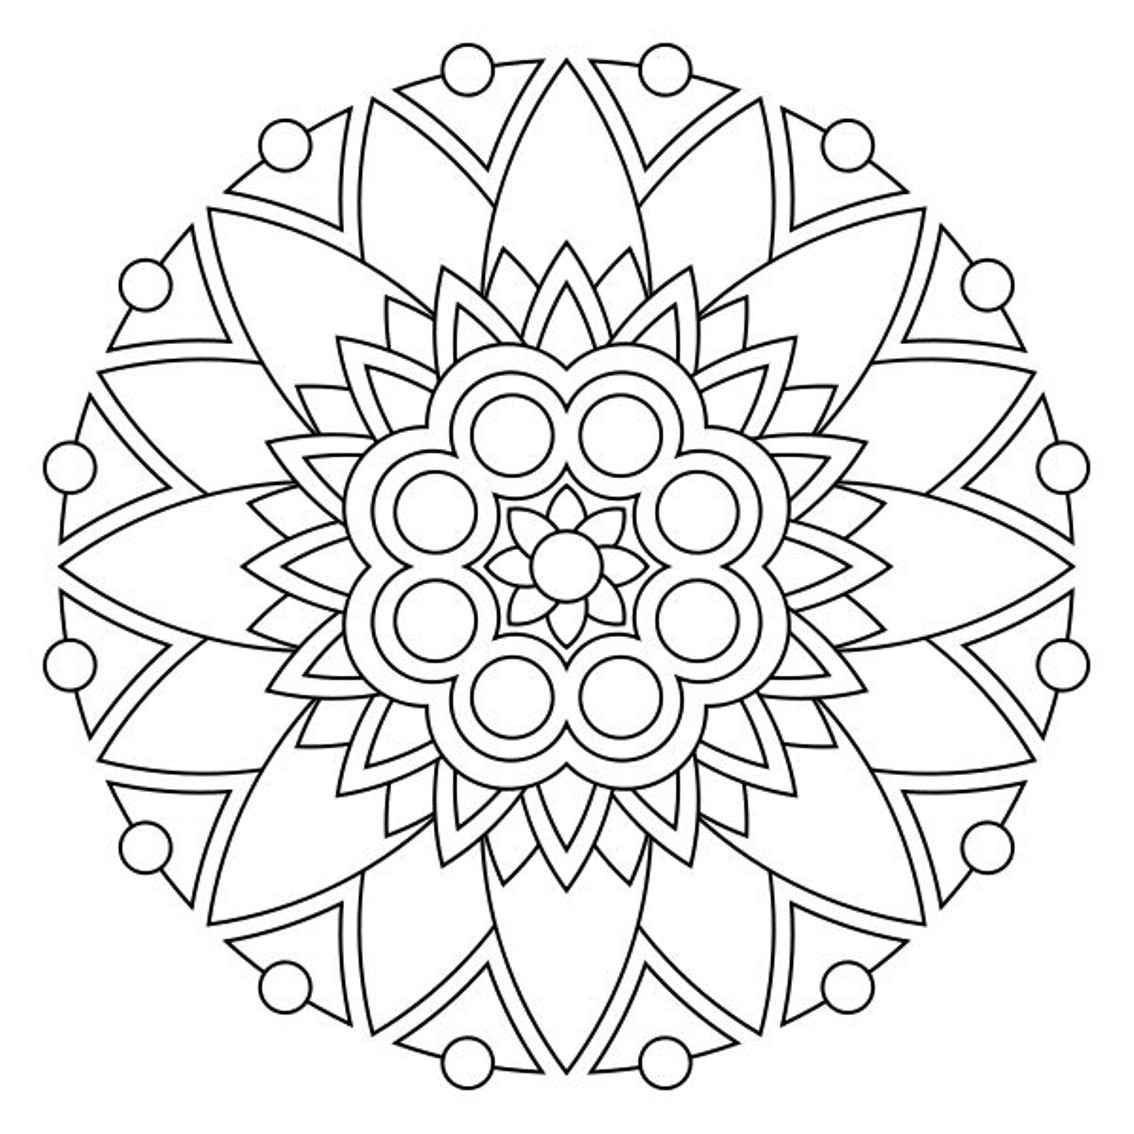 Mandala Drawing Easy at GetDrawings.com | Free for personal use ...